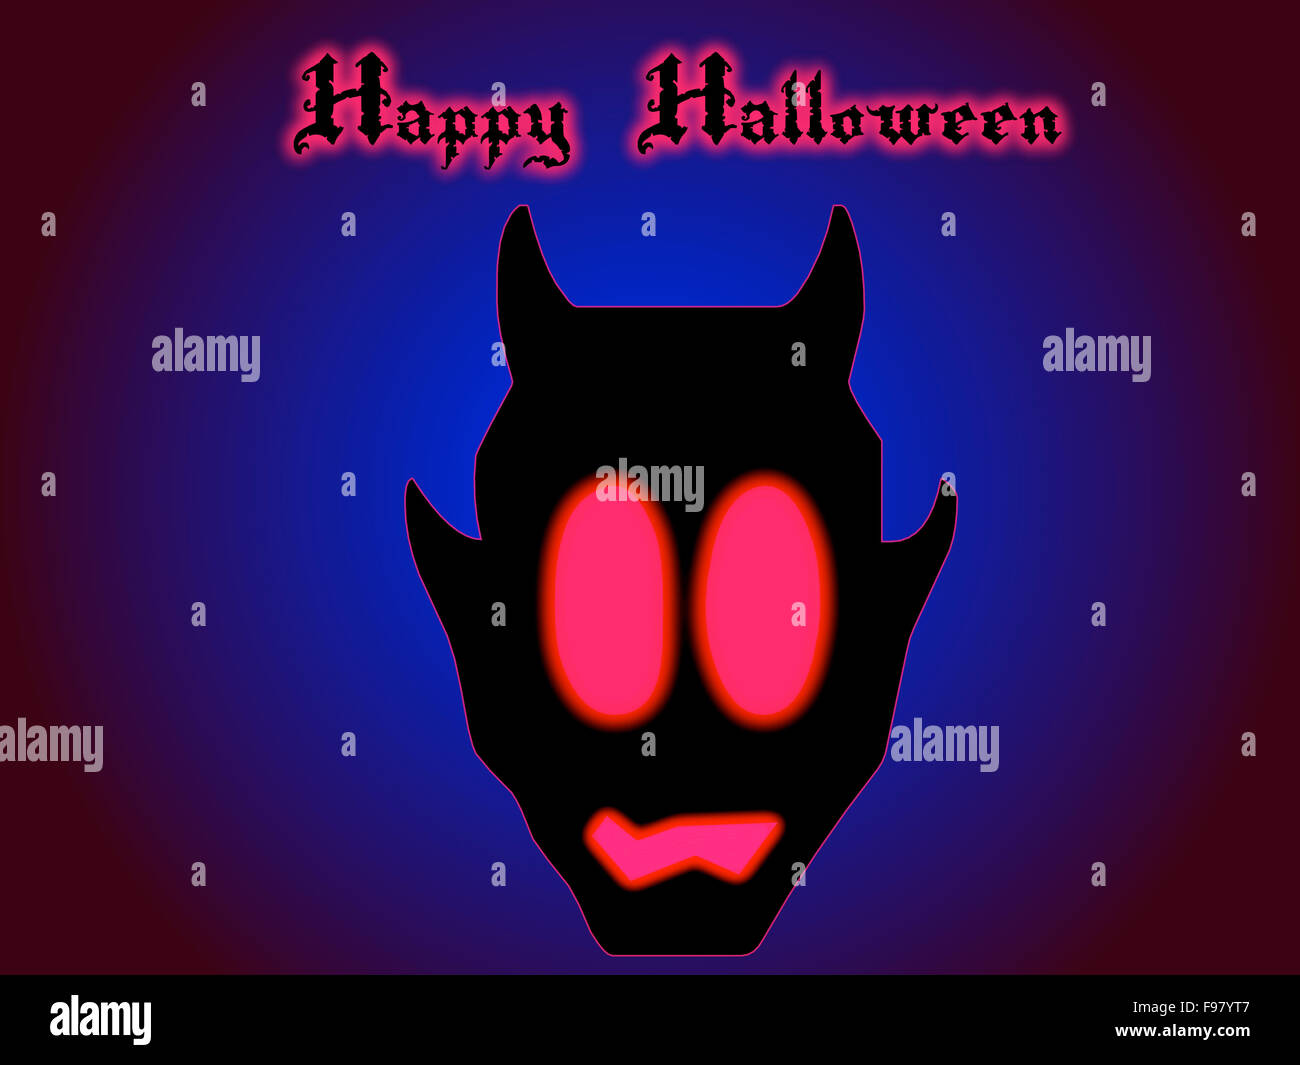 Happy Halloween Card With Devil And His Fierce Glowing Red Eyes